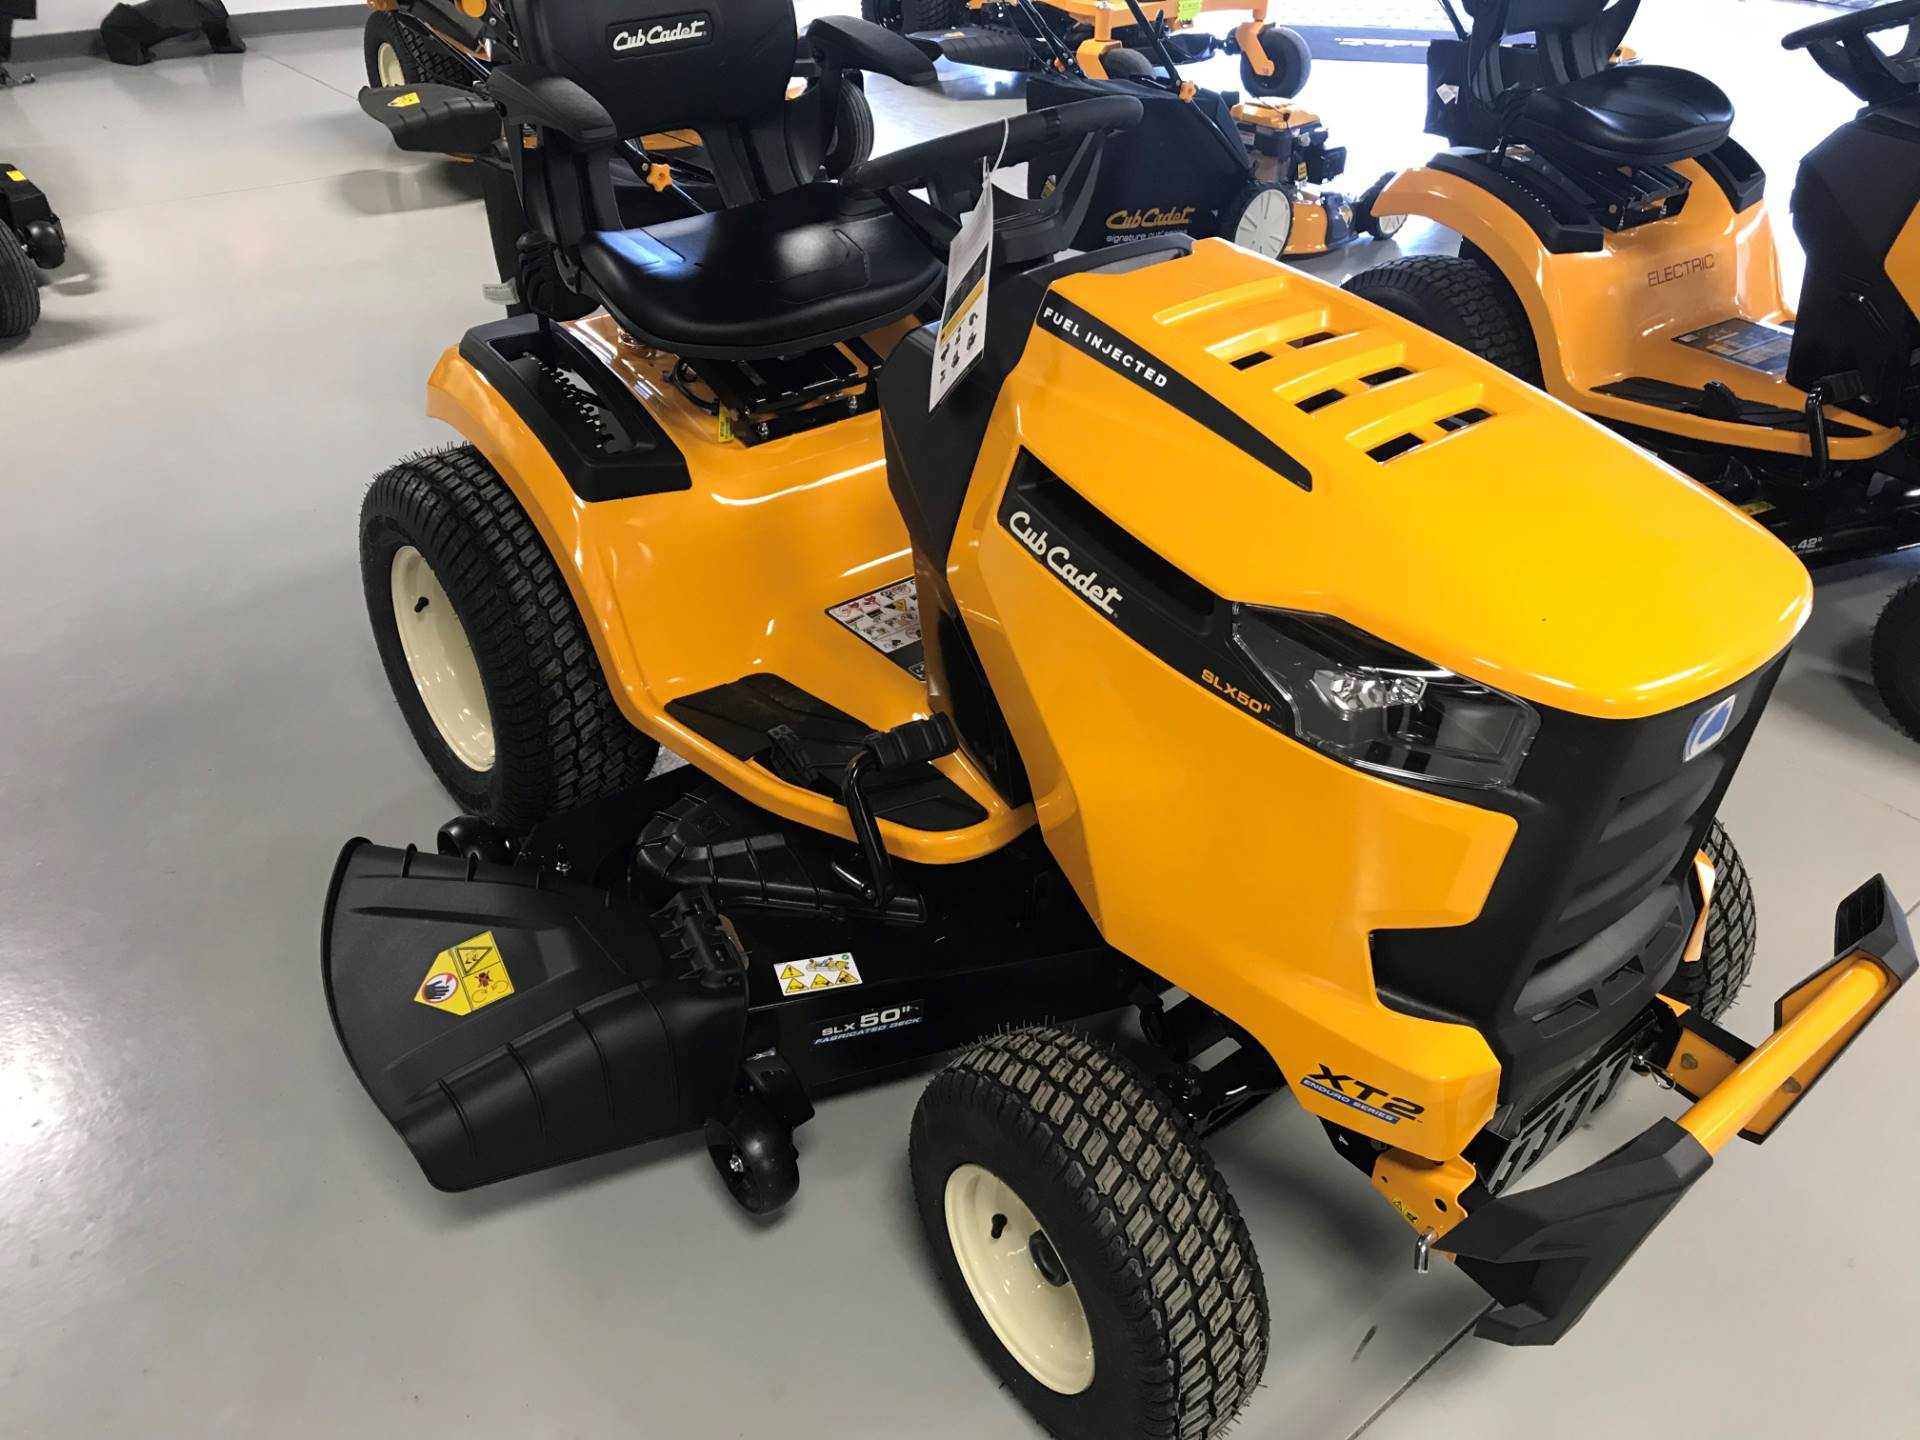 2020 Cub Cadet XT2 SLX50 50 in. Cub Cadet 679 cc in Hillman, Michigan - Photo 2